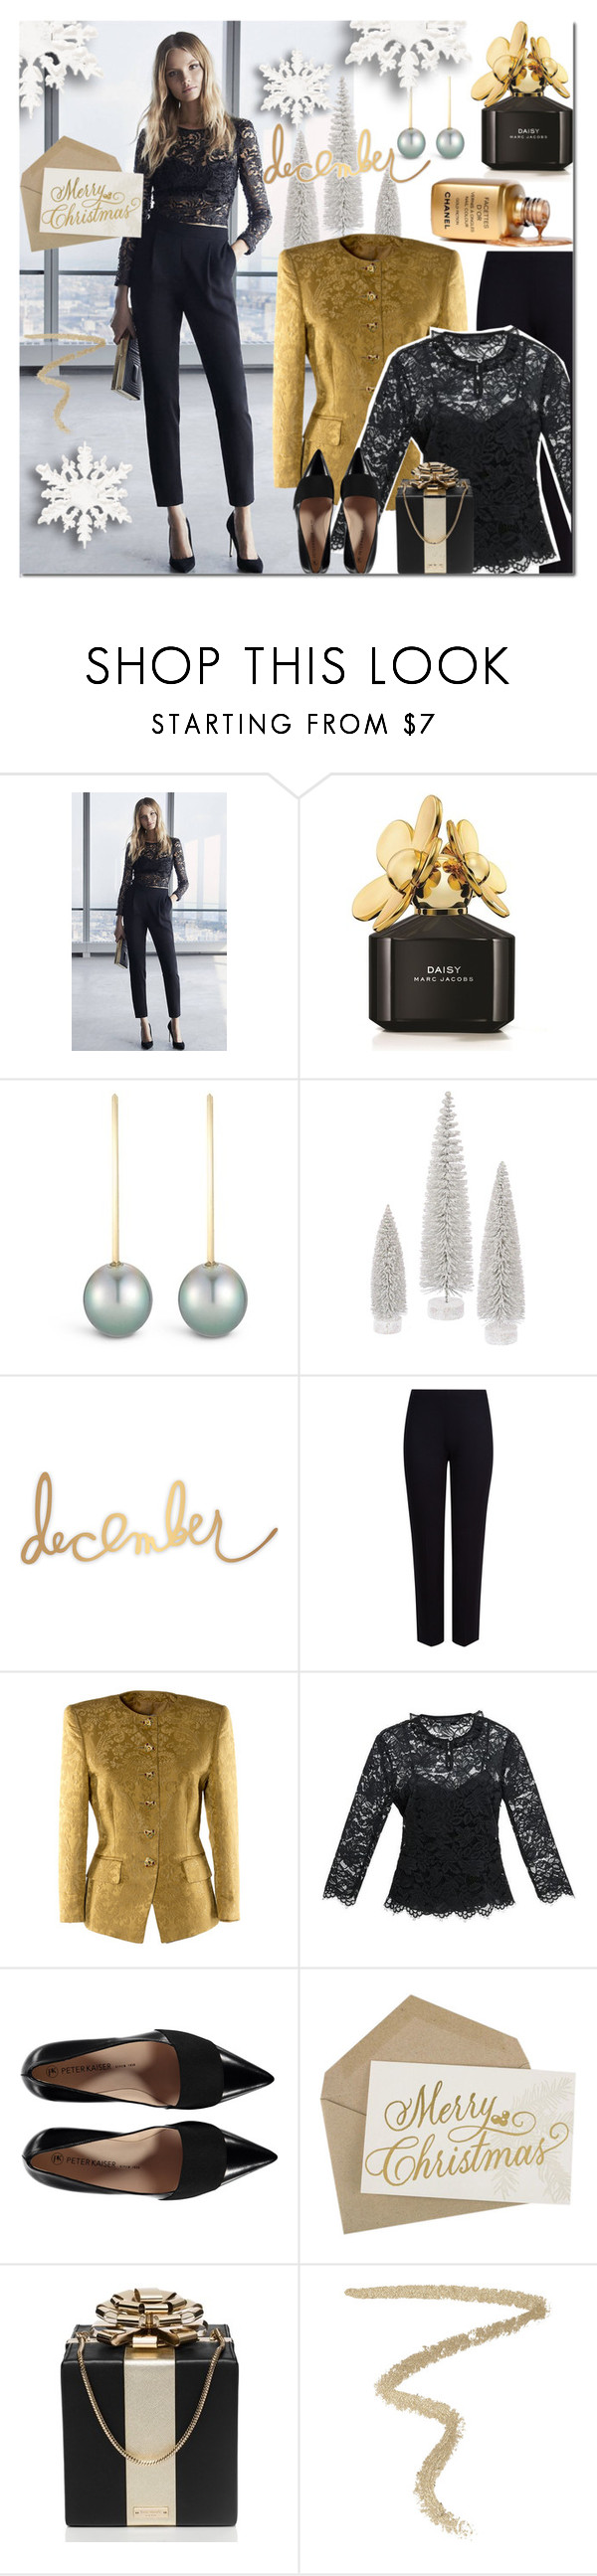 """Merry Christmas!"" by elena-starling ❤ liked on Polyvore featuring Marc Jacobs, M&S Collection, Rena Lange, Marc by Marc Jacobs, Kate Spade, By Terry, Christmas, gold, fallwinter2015 and Christmas2015"